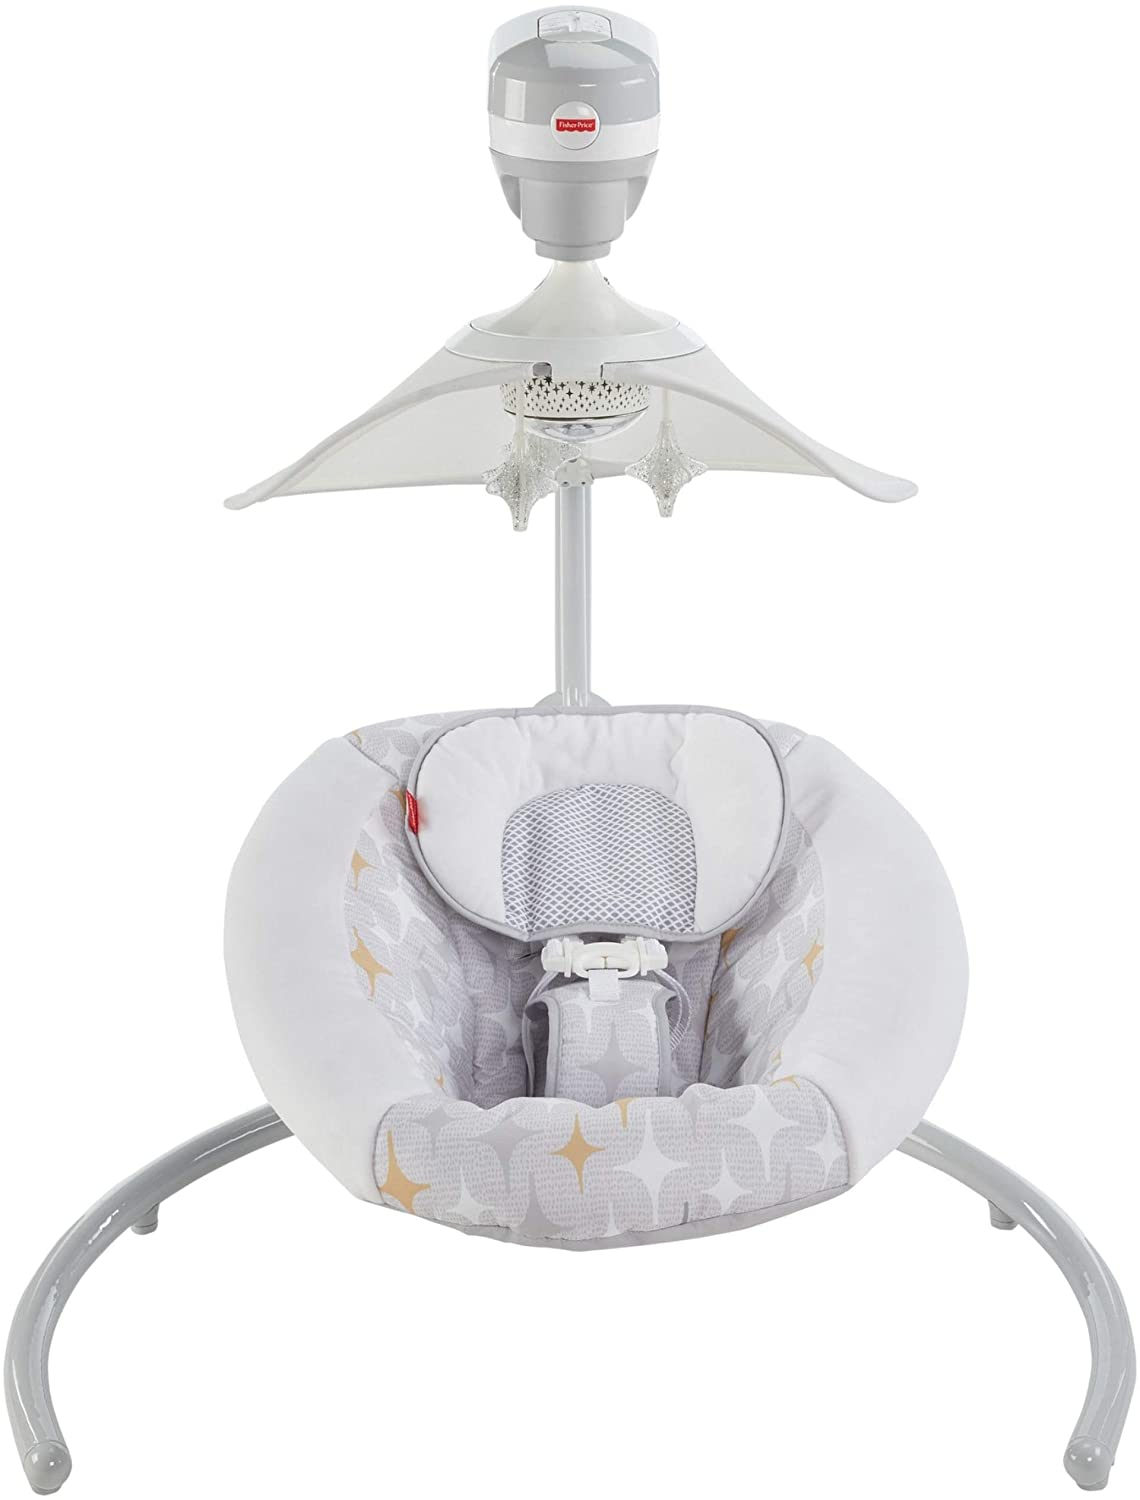 Fisher-Price Starlight Revolve Swing with SmartConnect, Silver/Gold FFH99